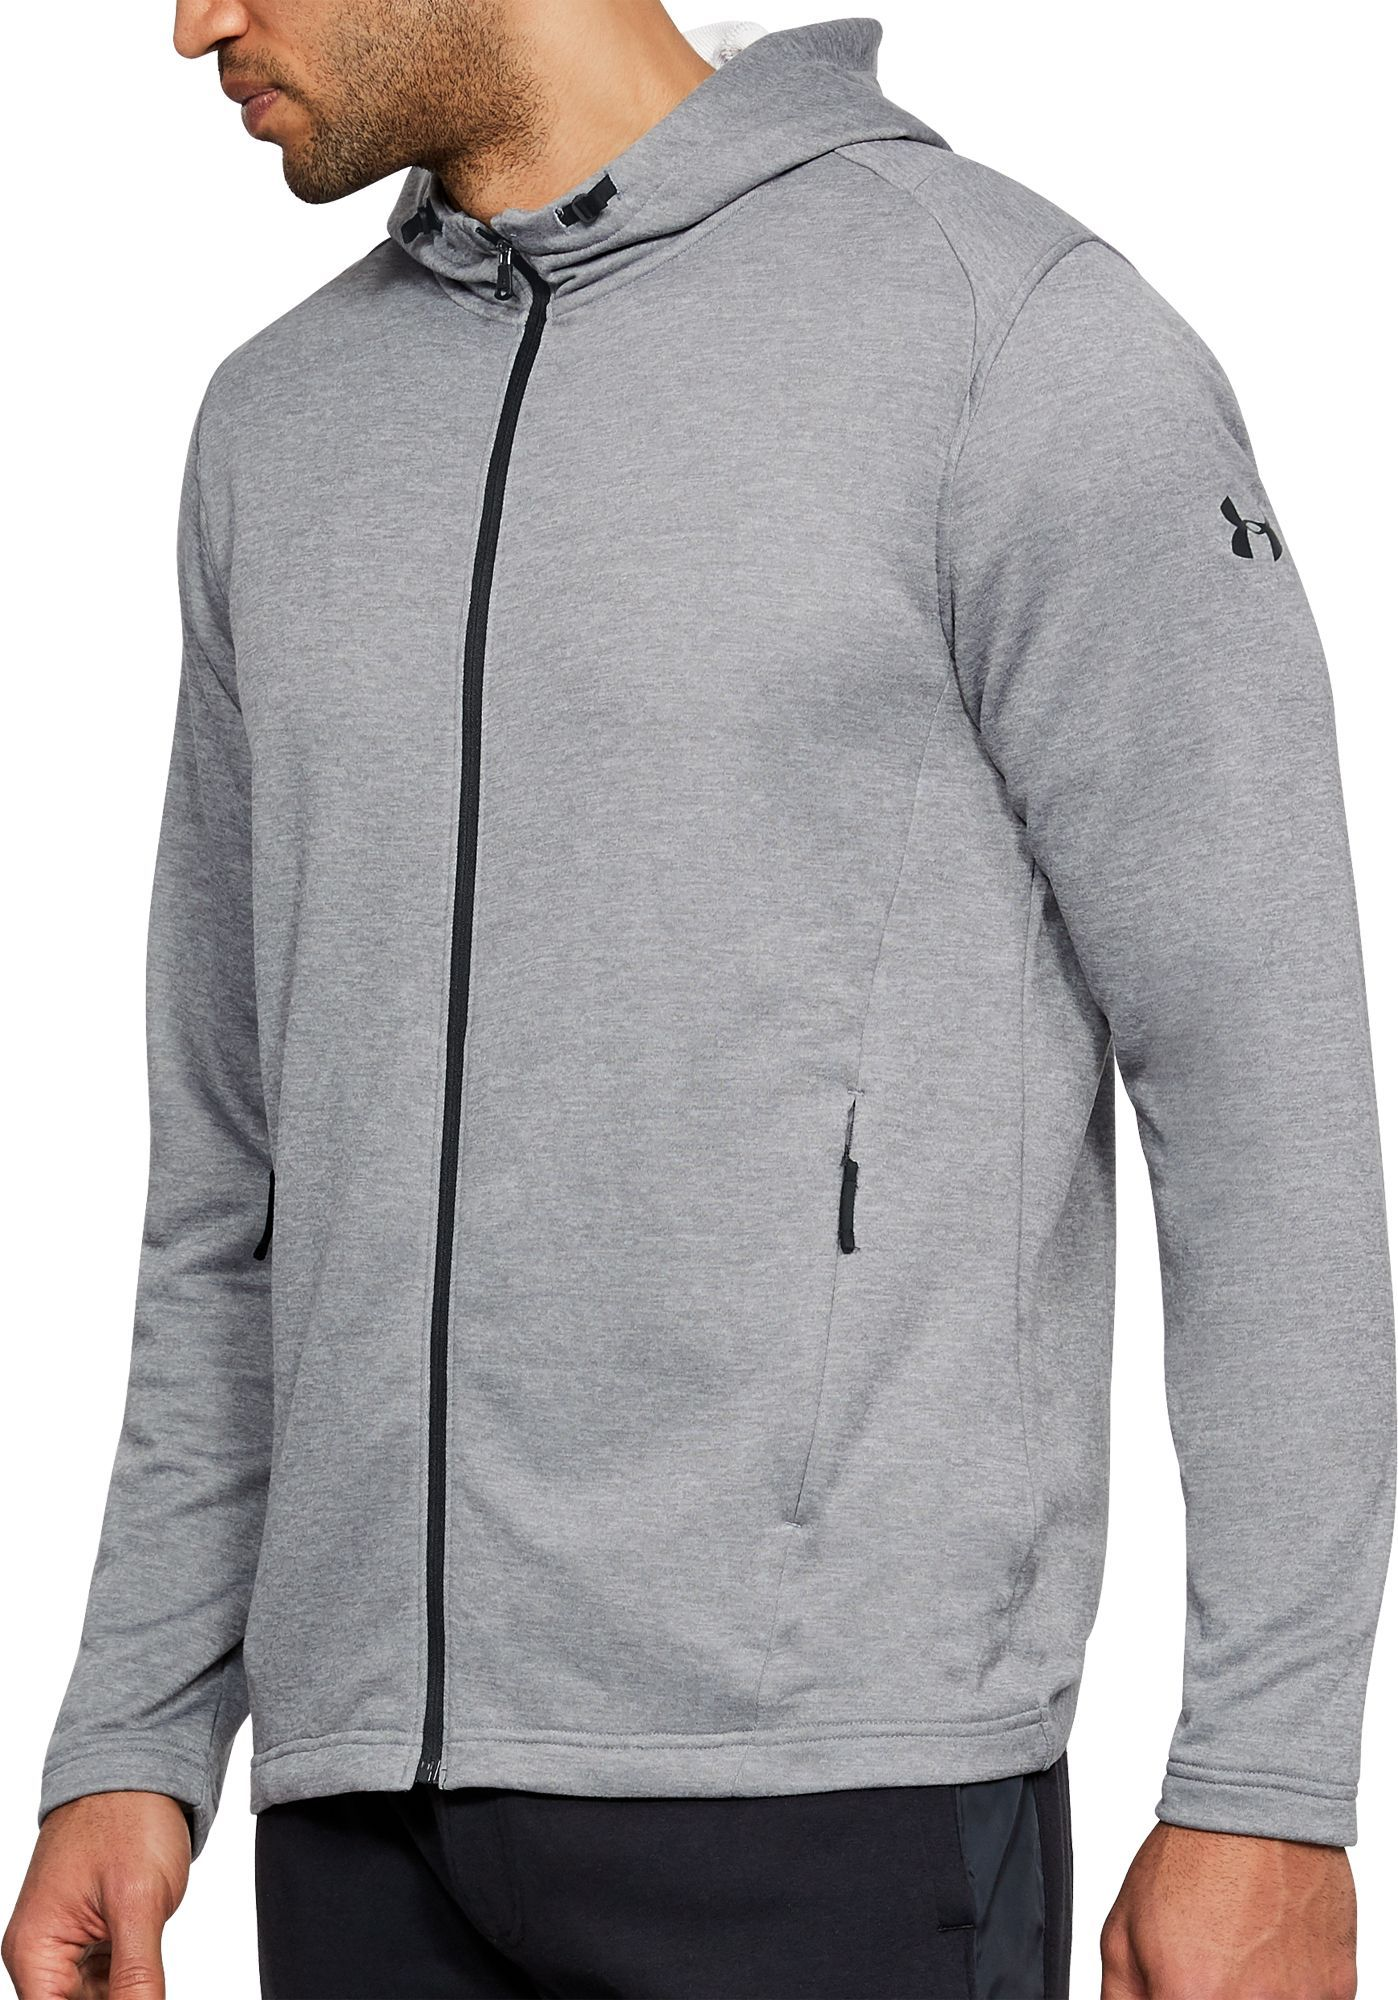 ec1fe1679 Under Armour Men's MK1 Terry Fleece Full Zip Hoodie, Size: Medium, Gray